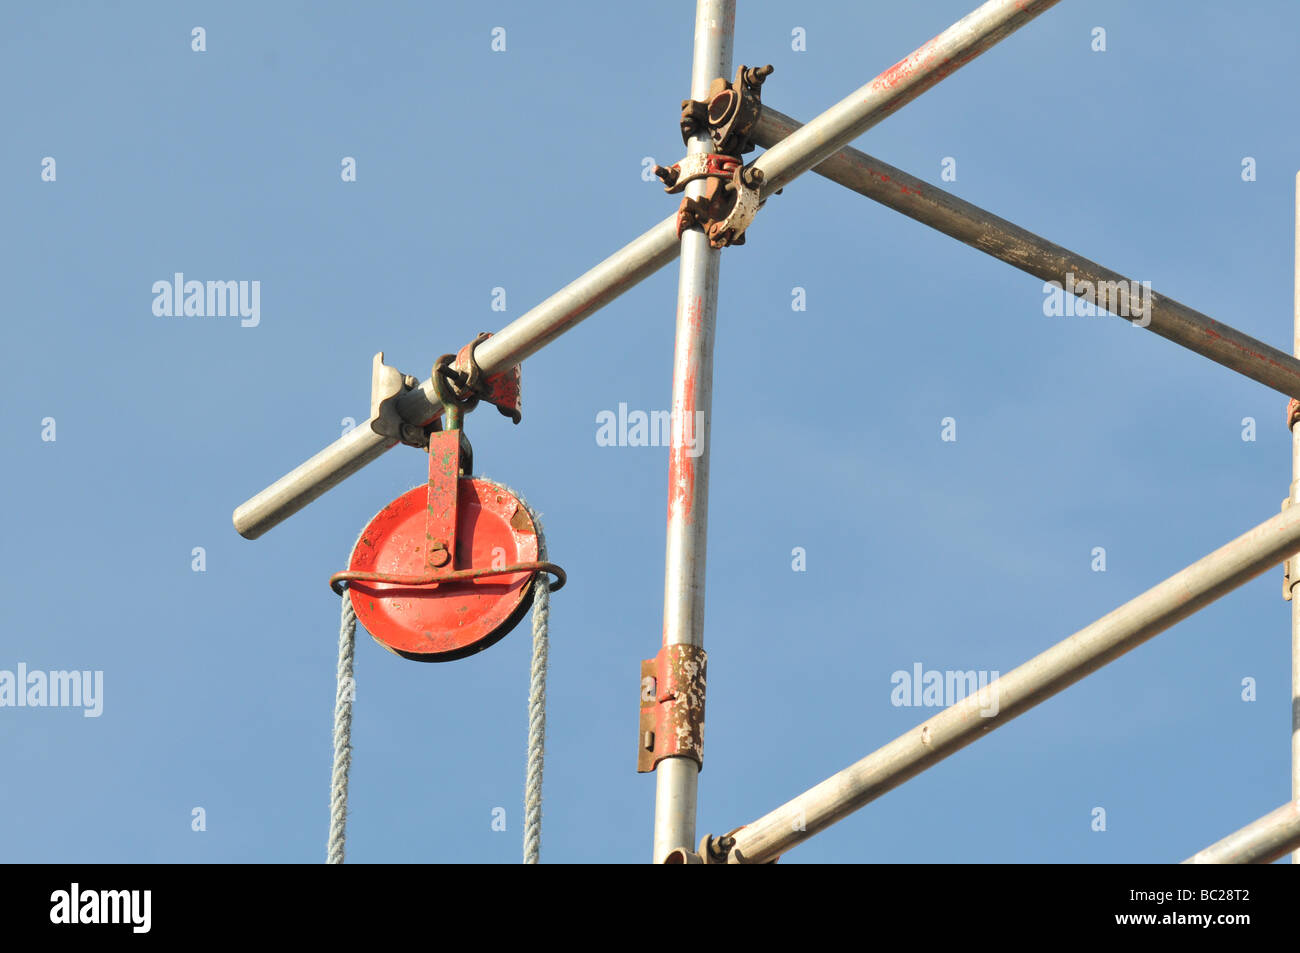 High level scaffolding showing a gin wheel with rope - Stock Image